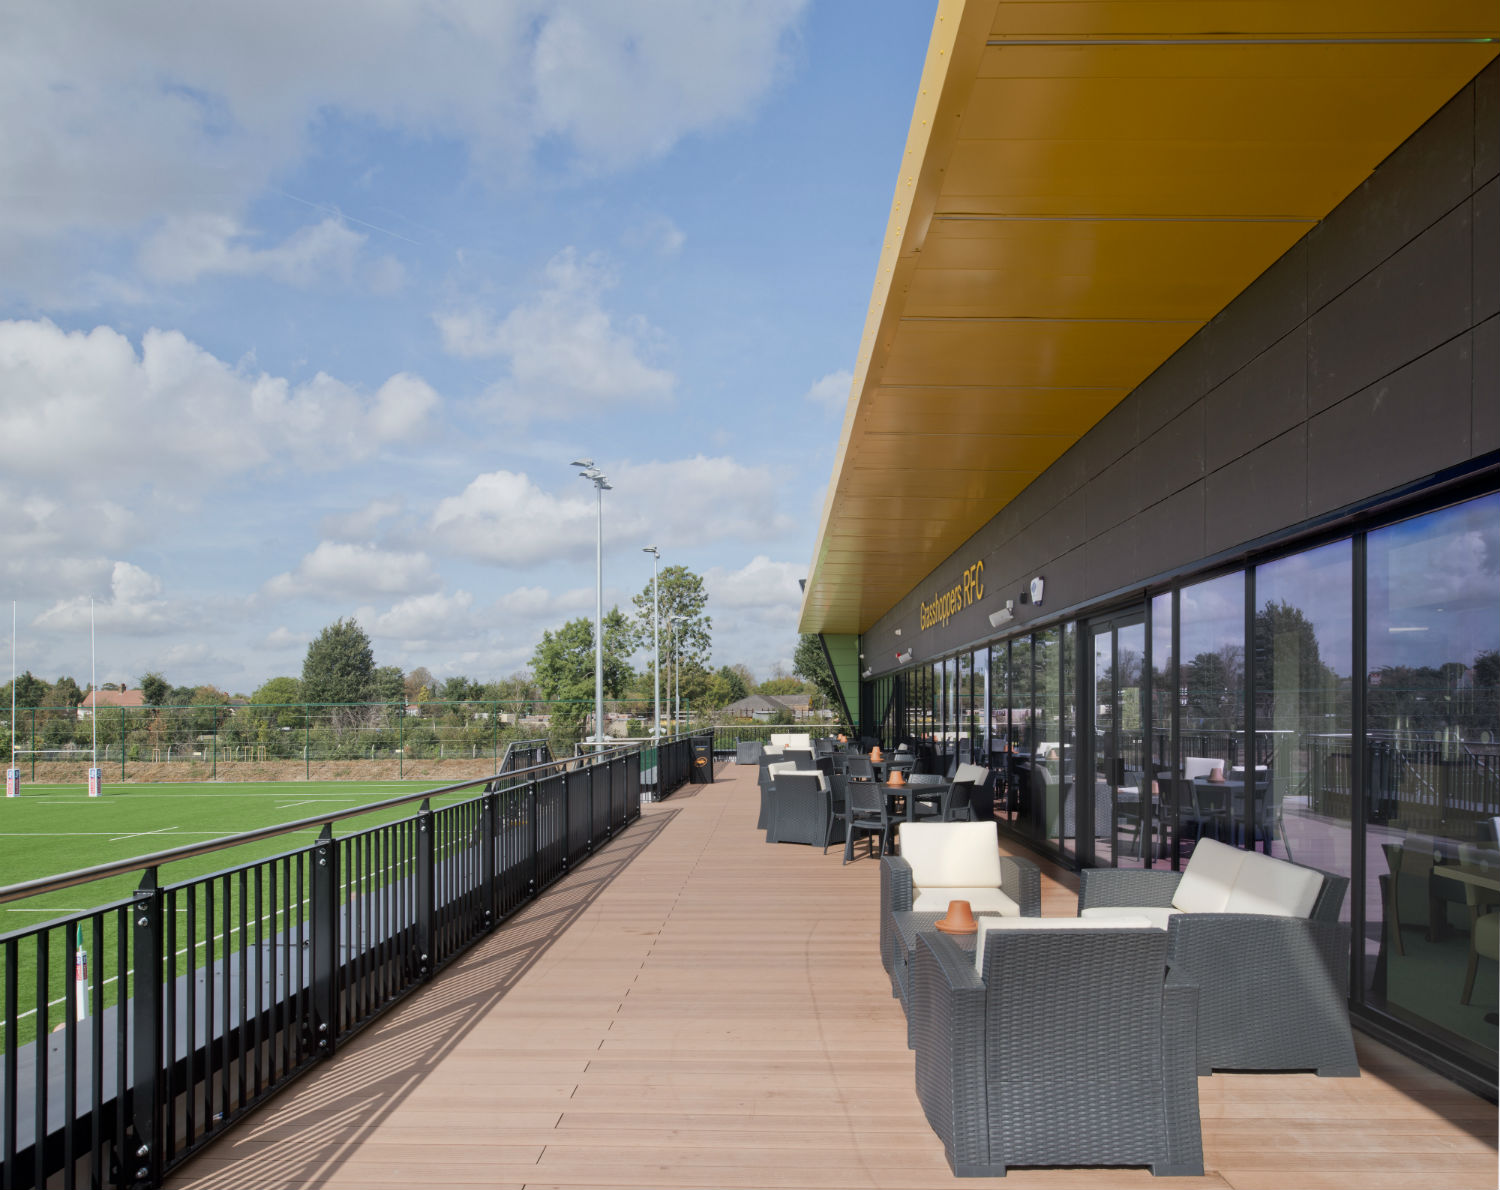 New £10m sports venue completes in west London